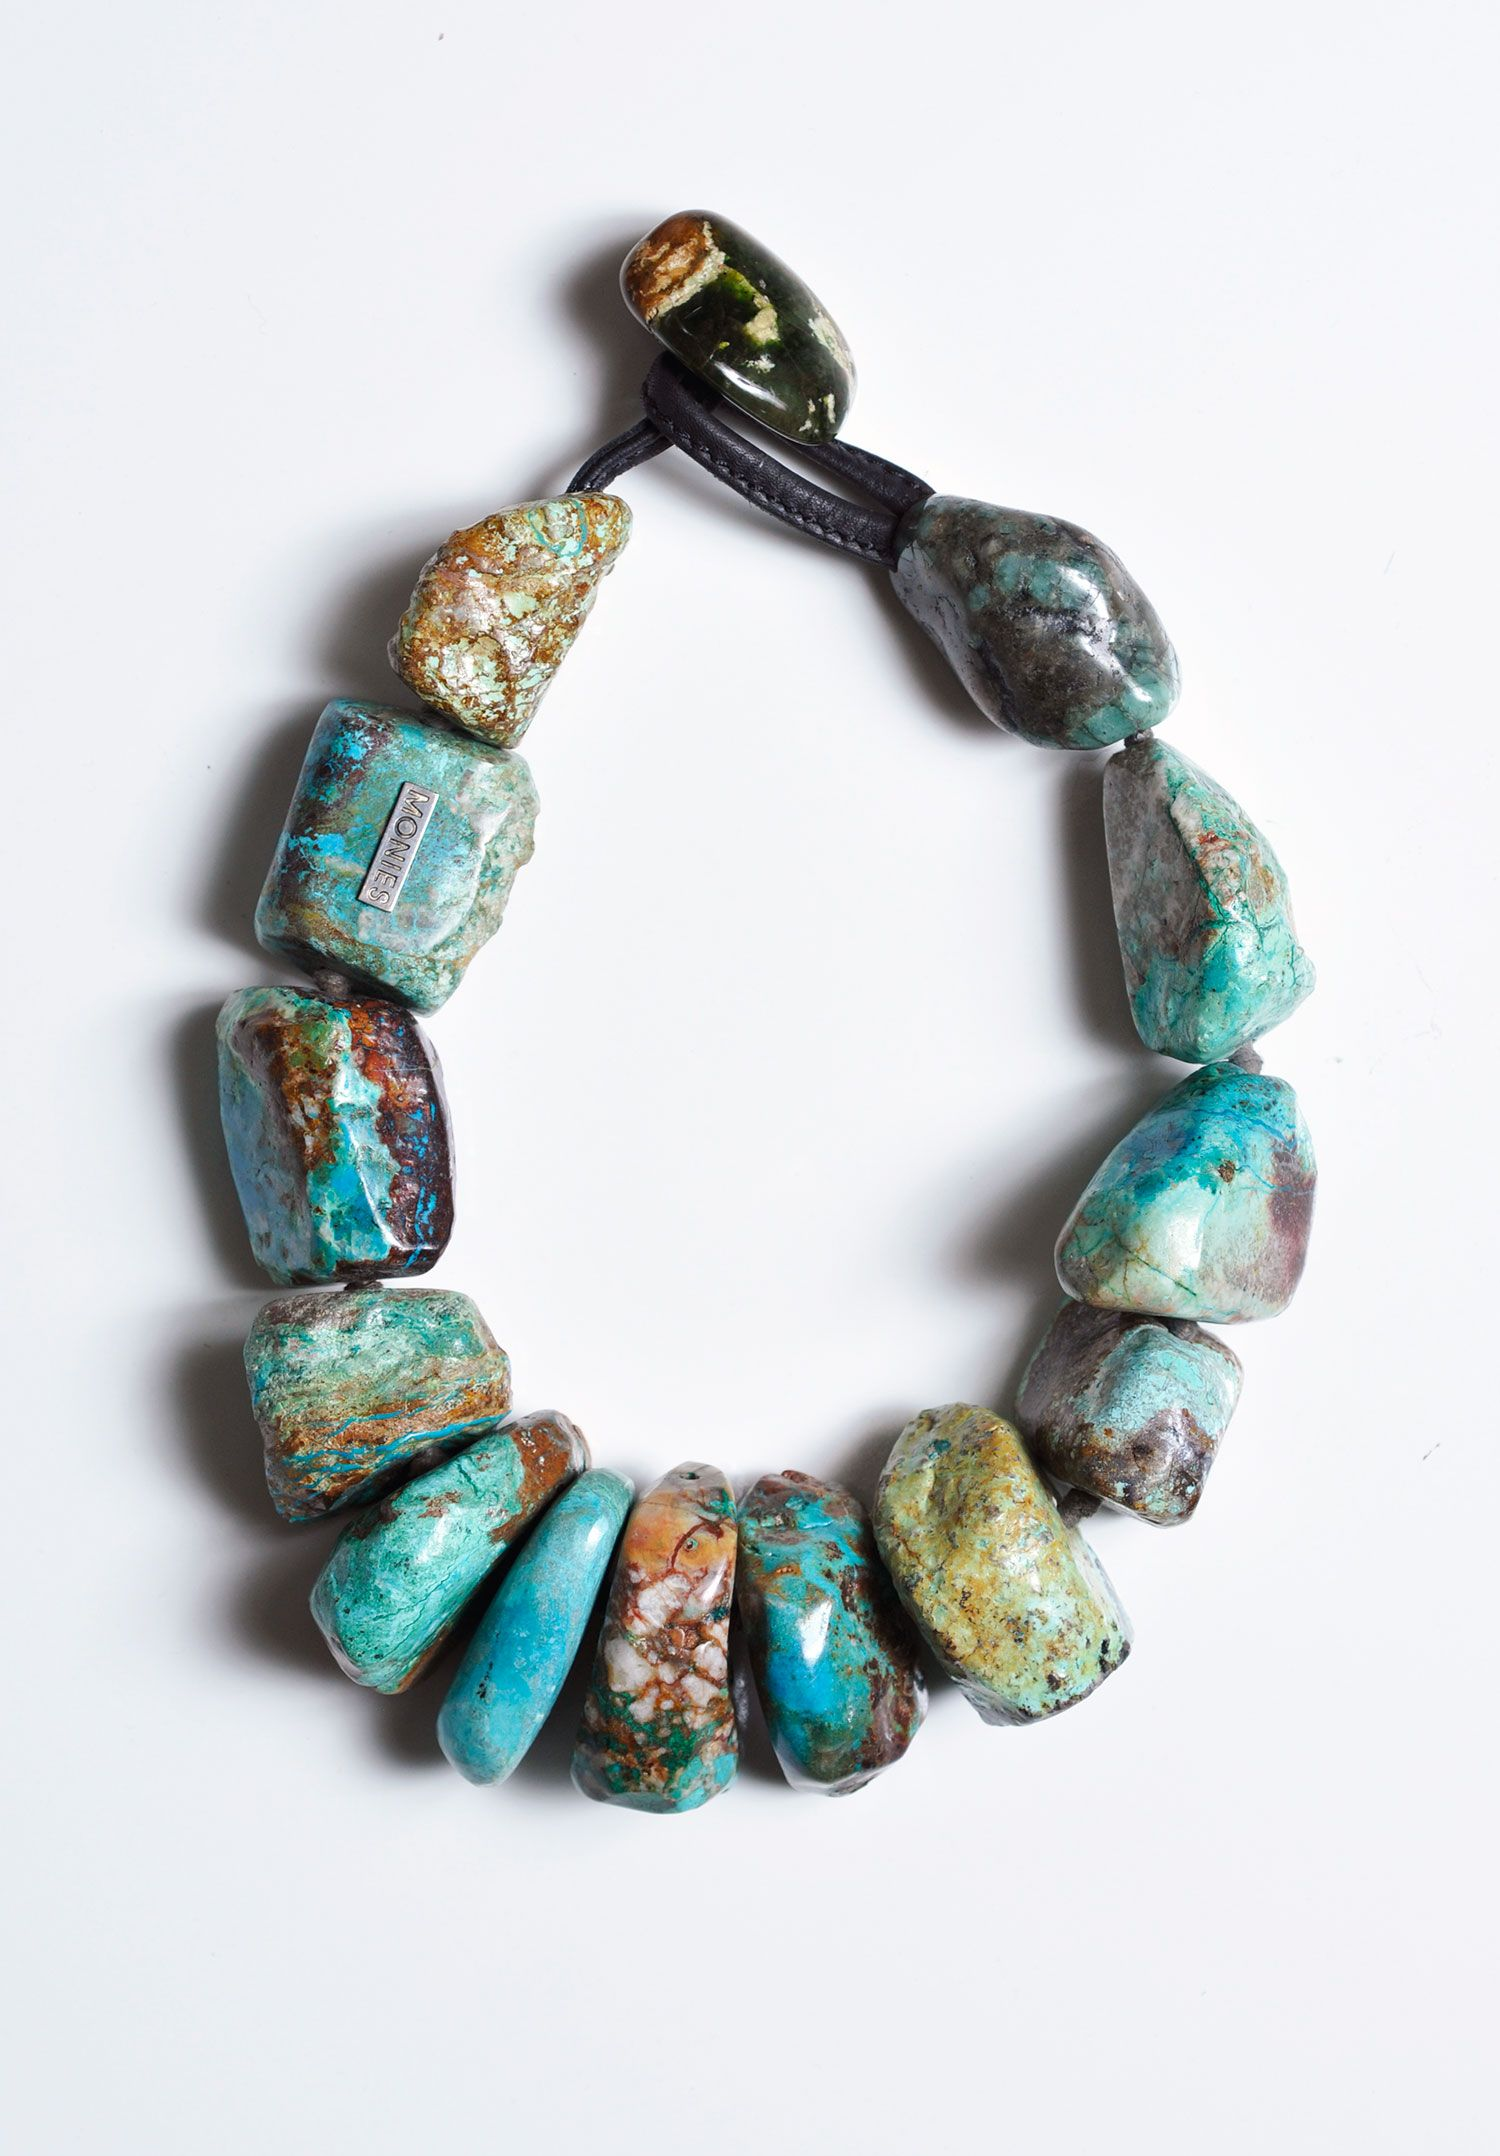 Chunky Turquoise Necklace By Monies Large Partly Polished Rough Matrix Beads Knotted Between Stones Stone And Leather Closure